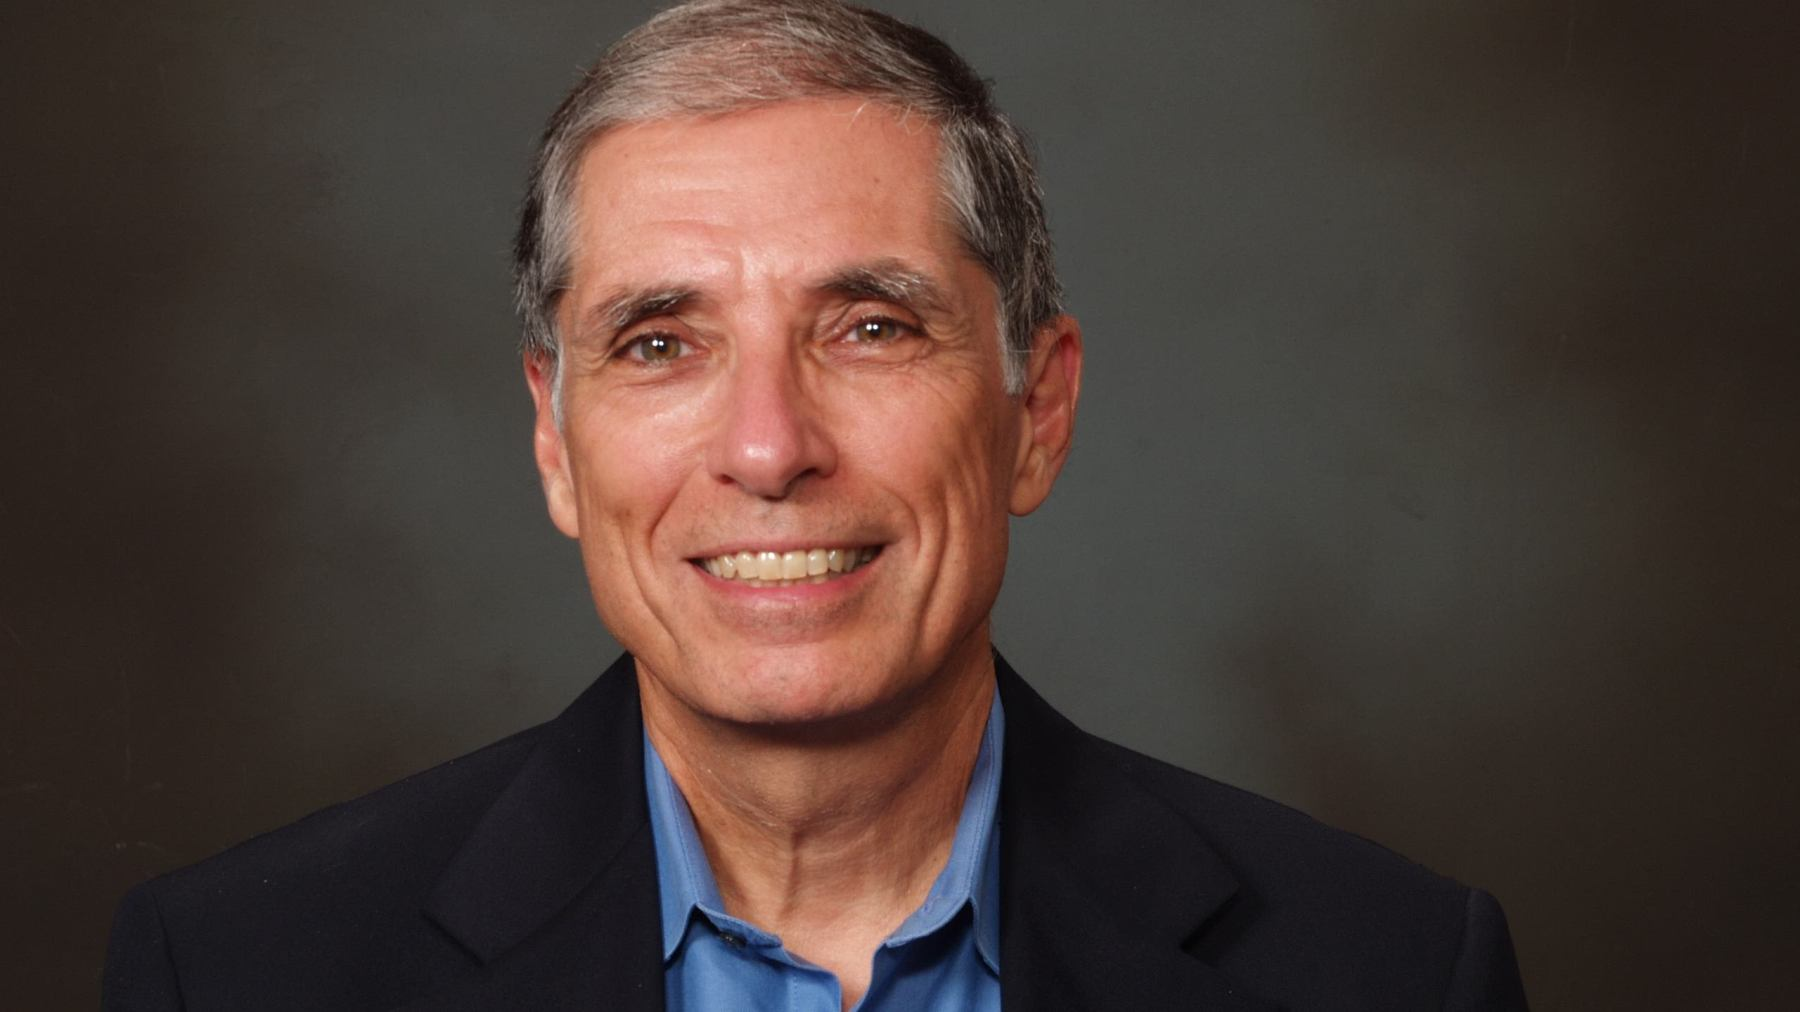 The Worry Trick With Dr. David Carbonell